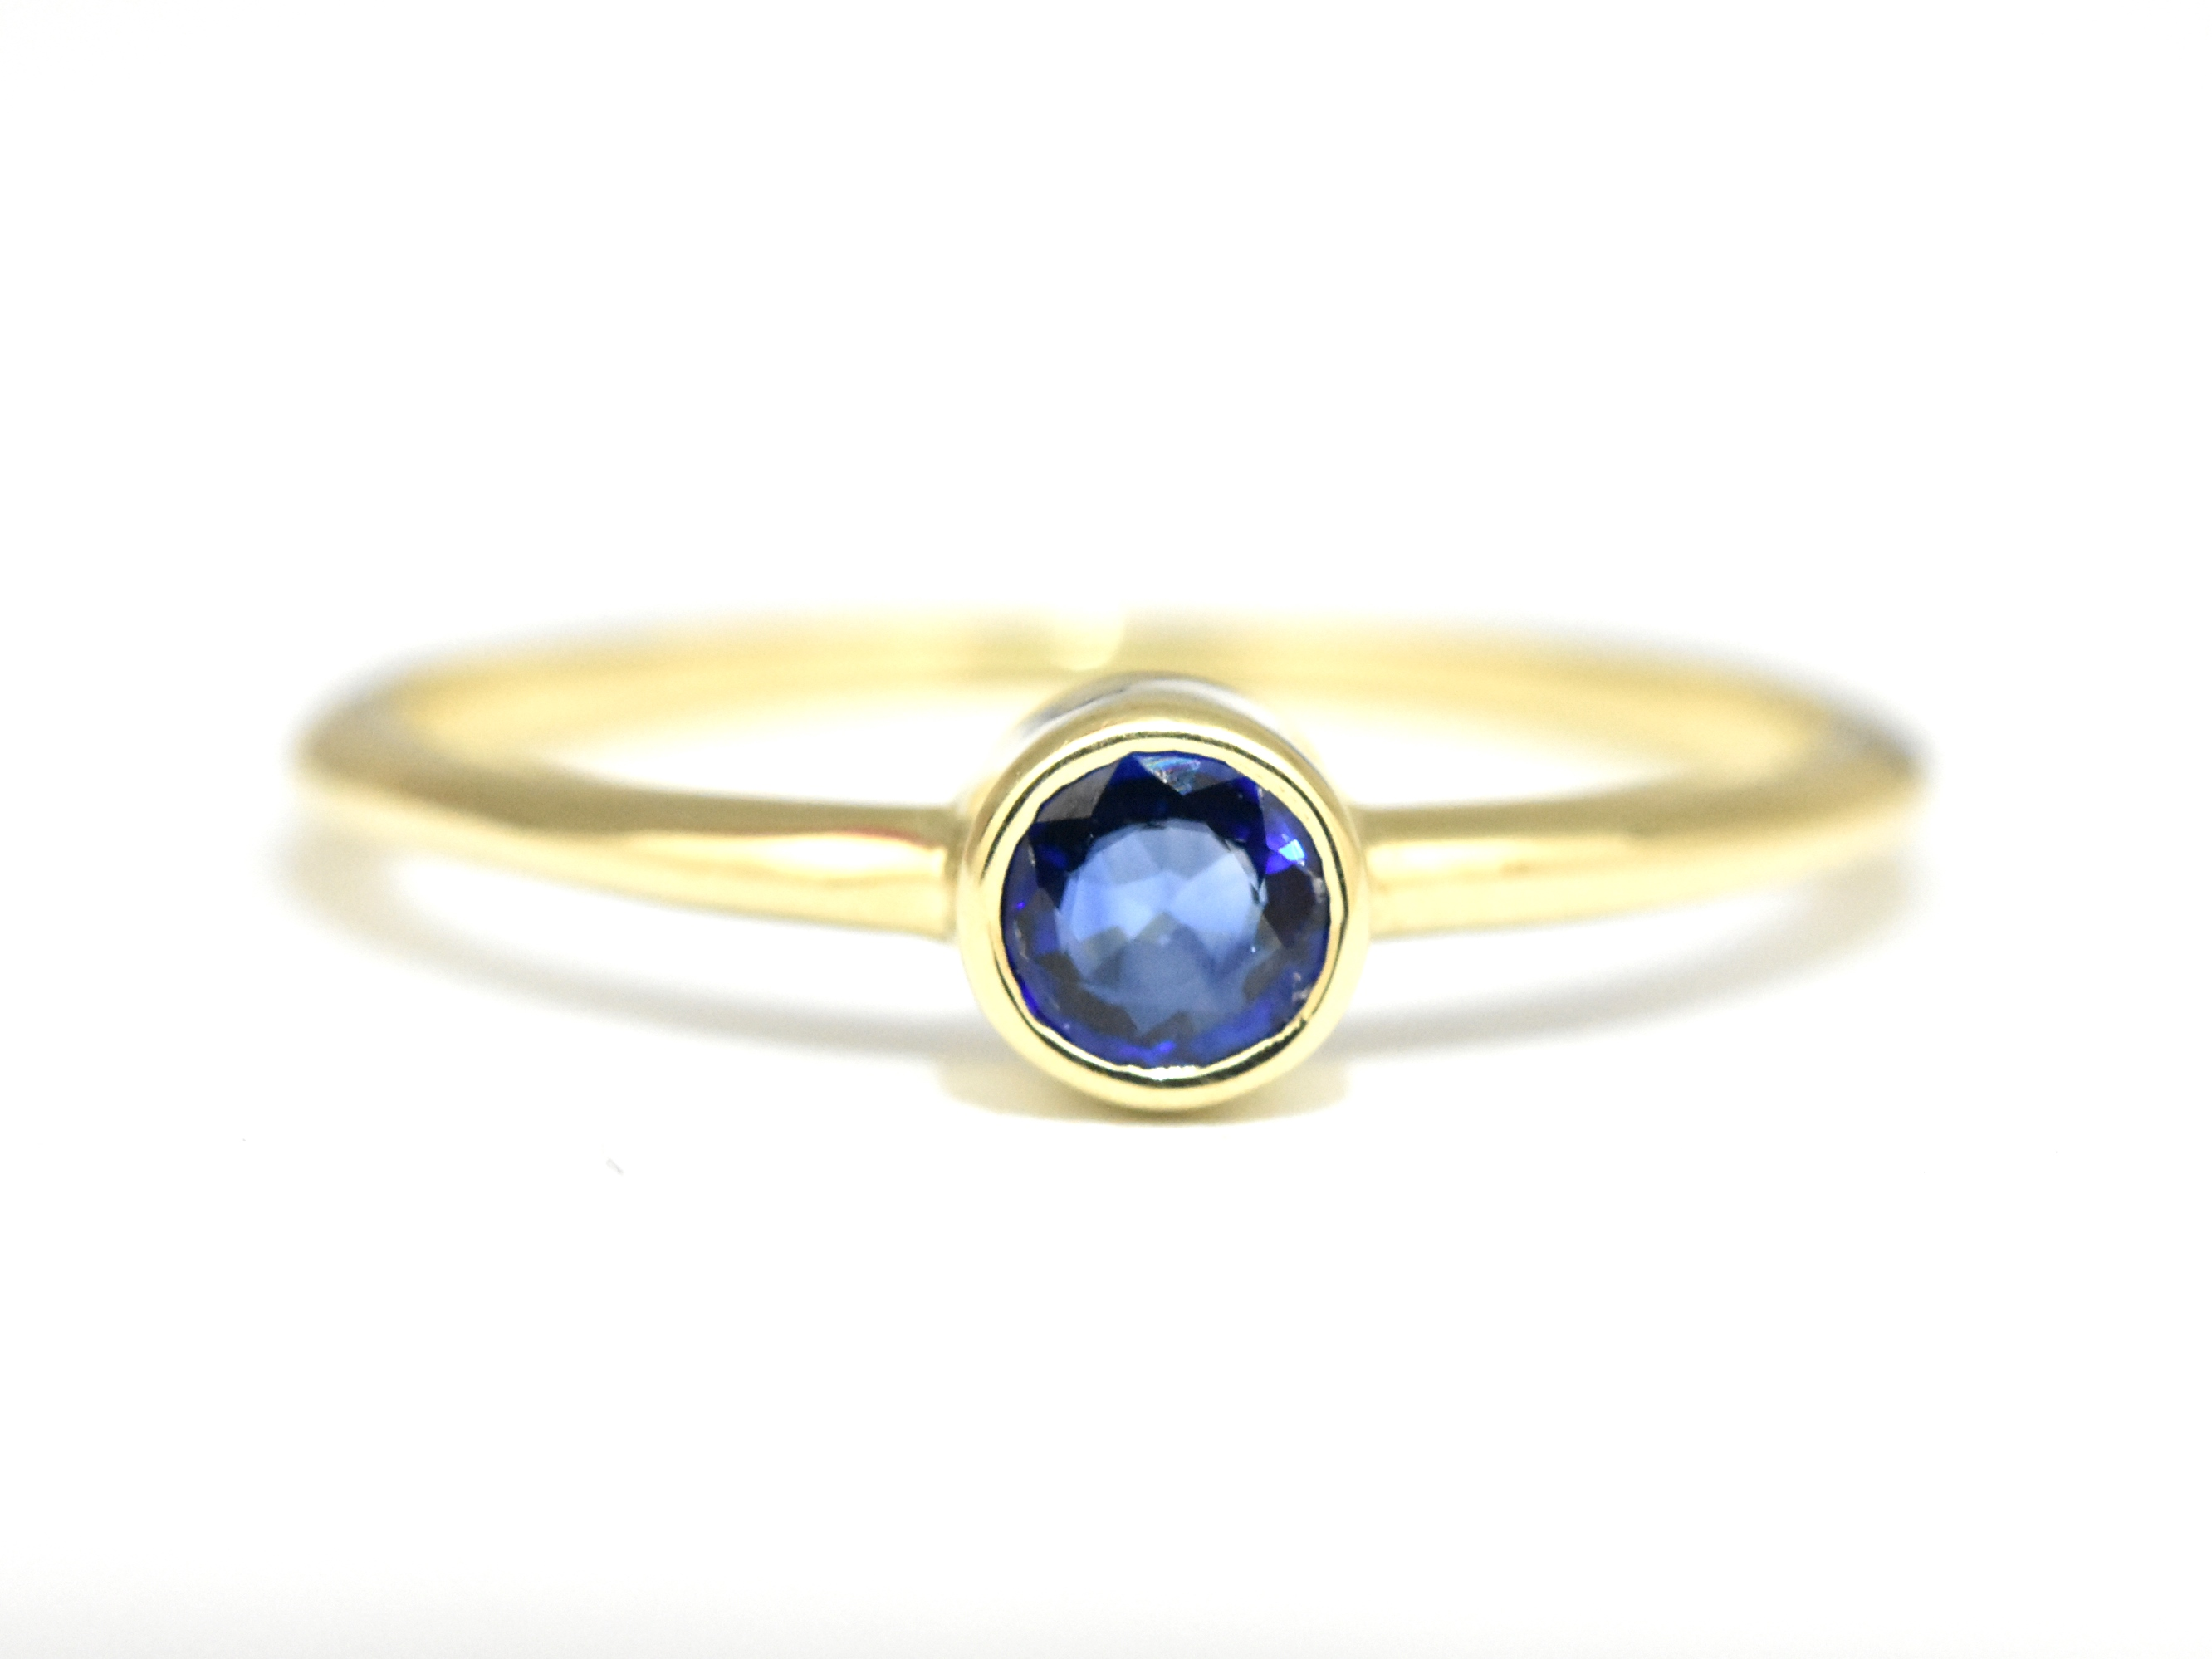 gold engagement shape pear dublin rings ring white wedding blue products campbell jewellers sapphire diamond